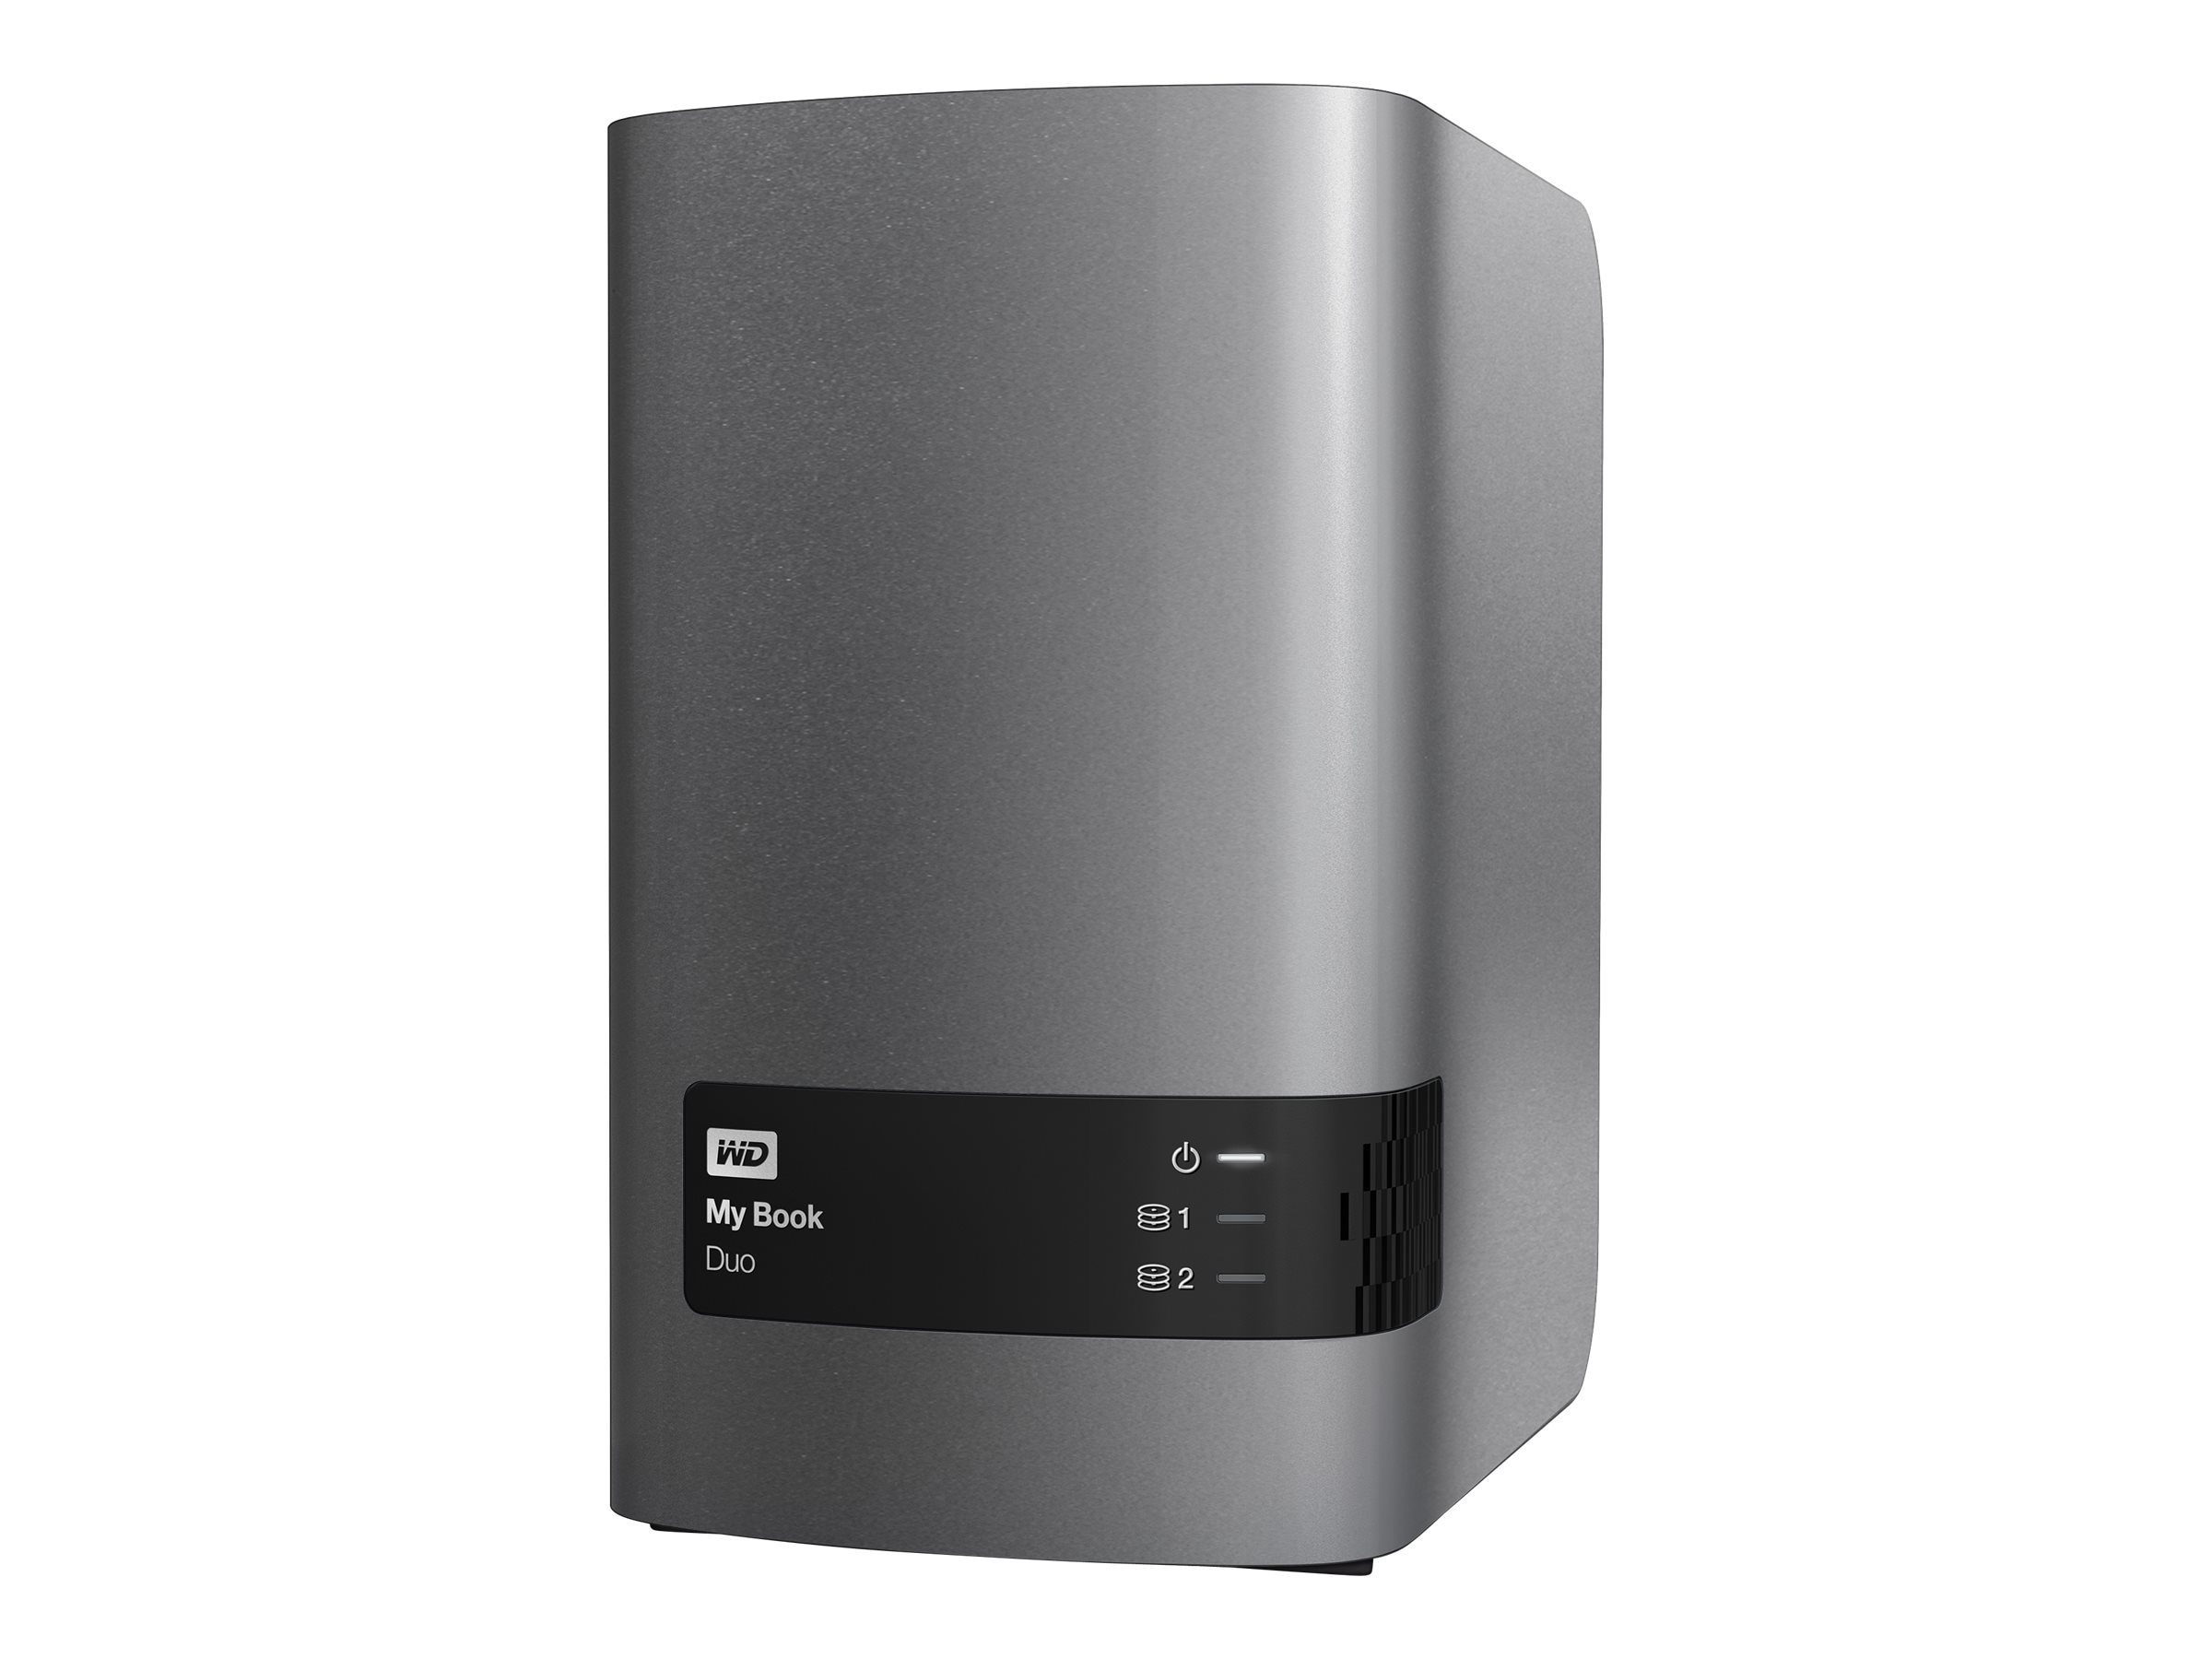 WD 12TB My Book Duo RAID Storage, WDBLWE0120JCH-NESN, 17380759, Hard Drives - External